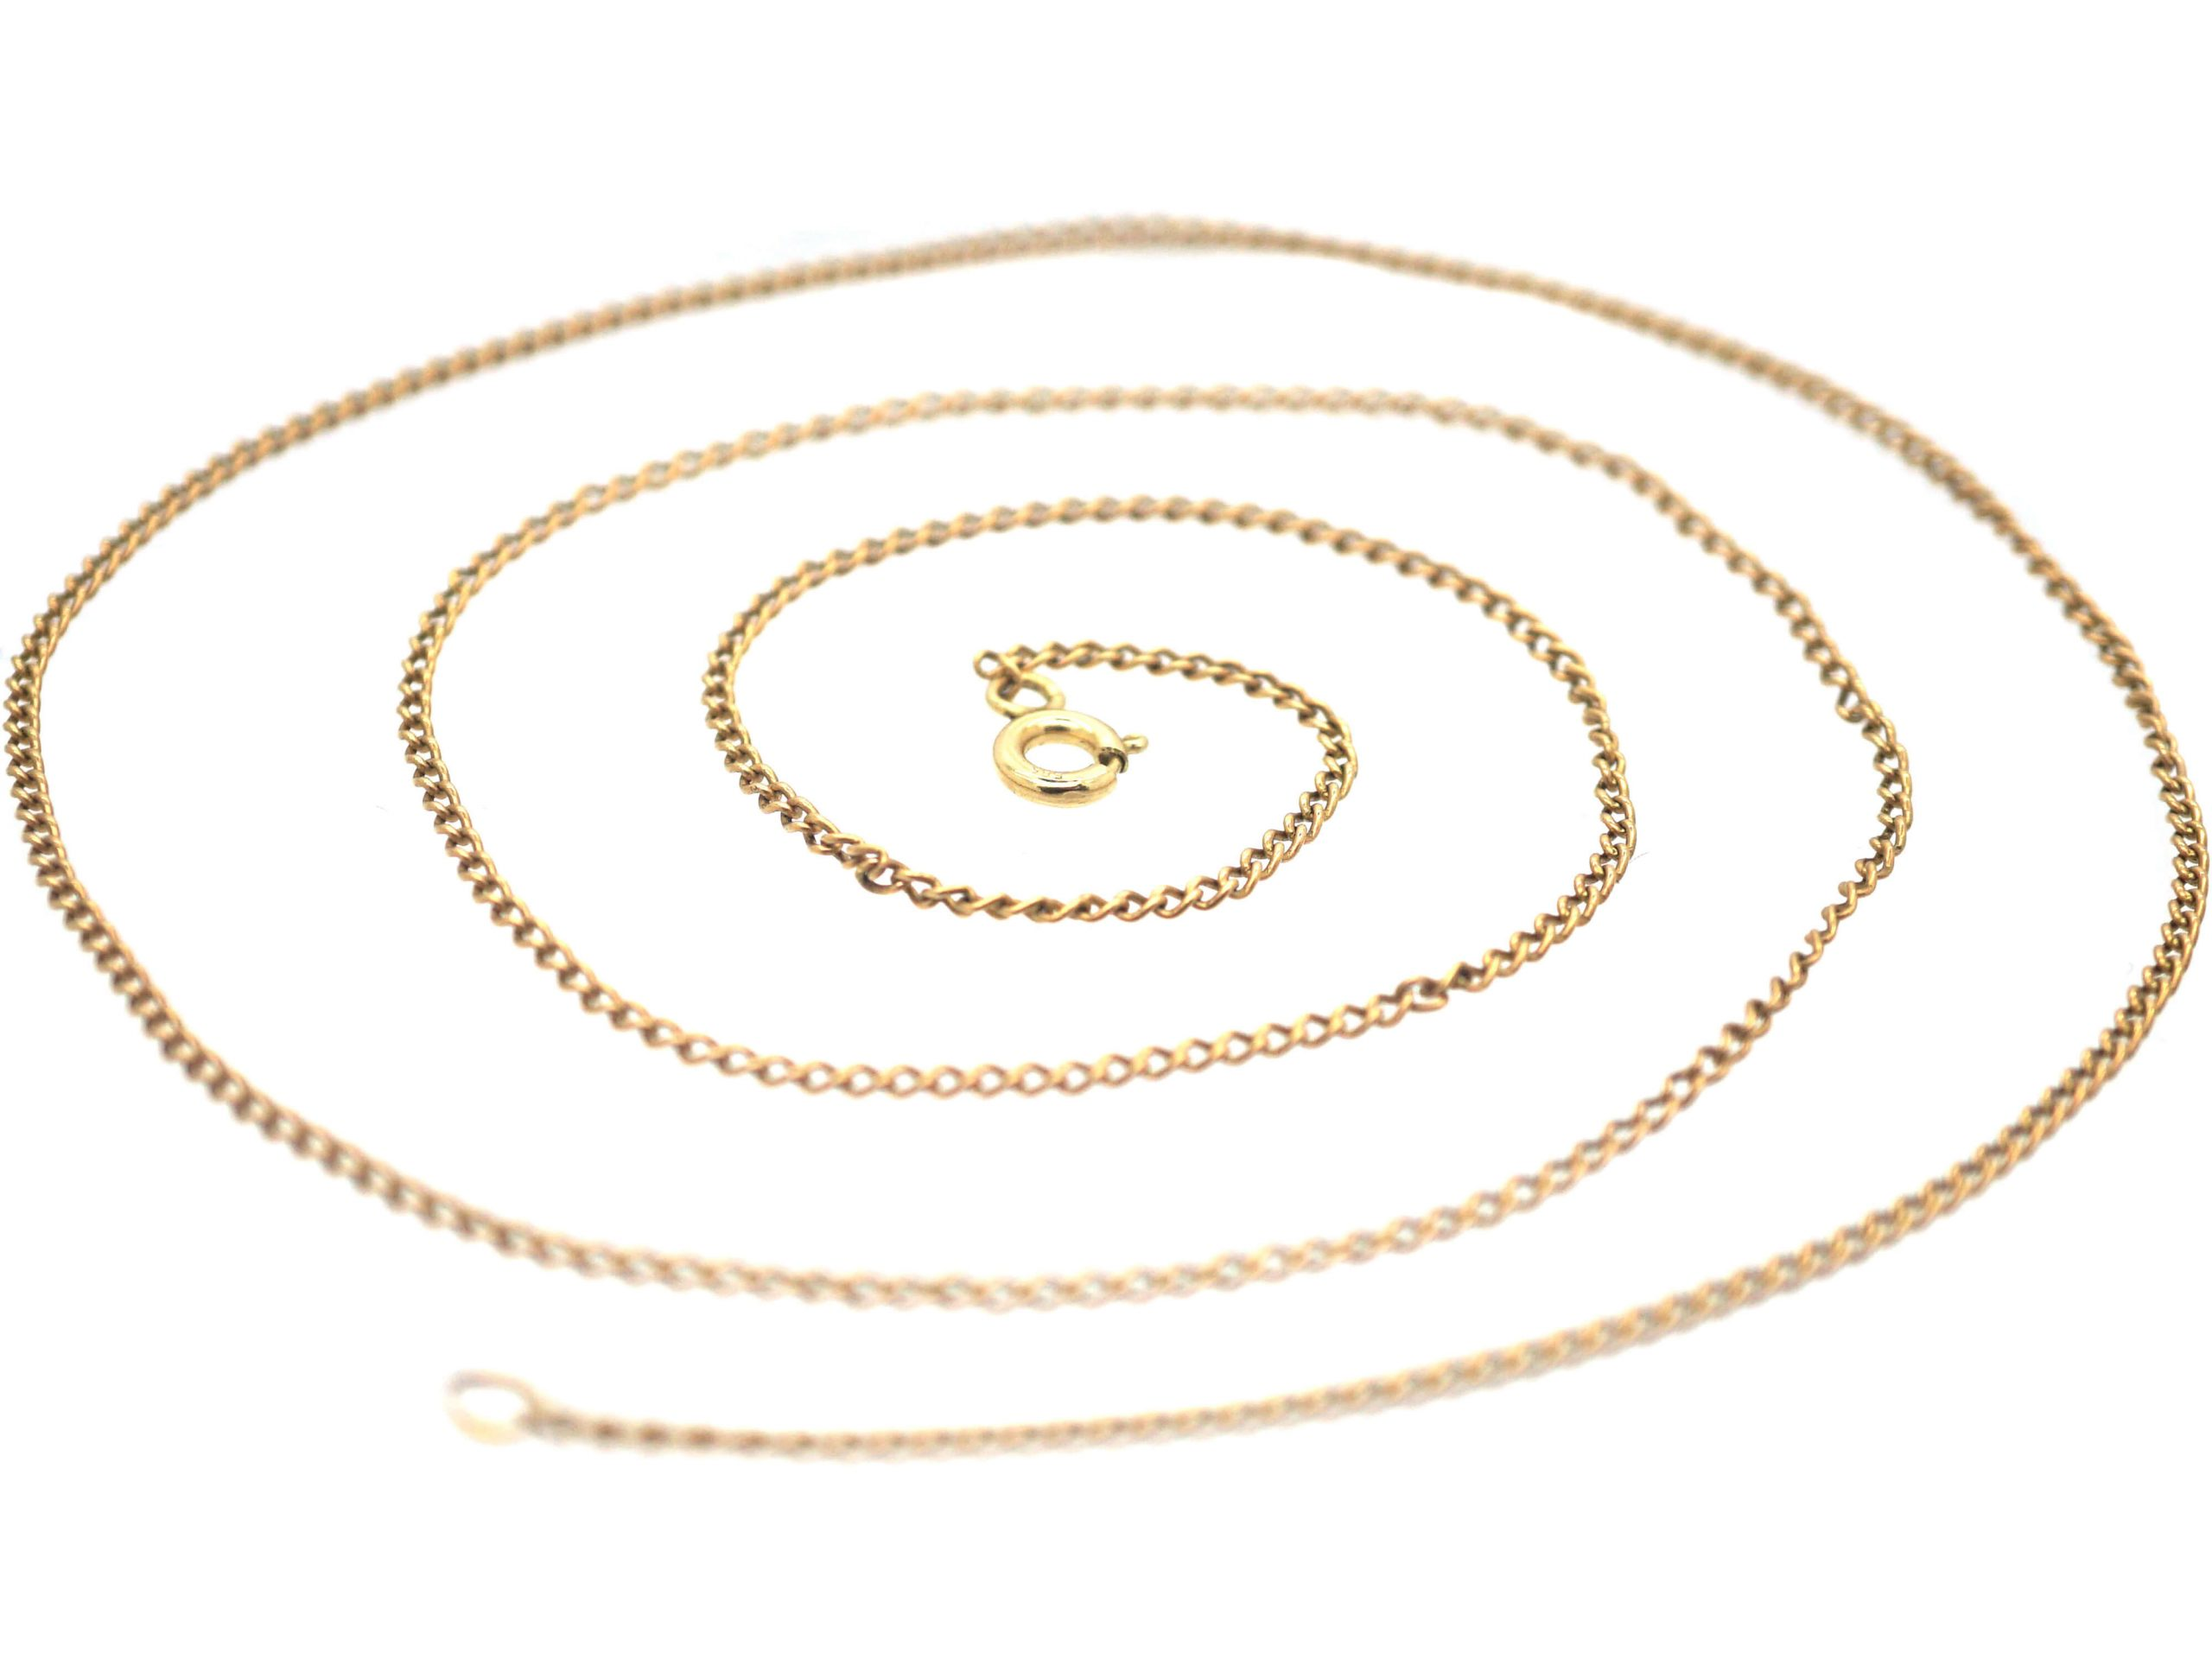 14ct Gold Trace Link Chain